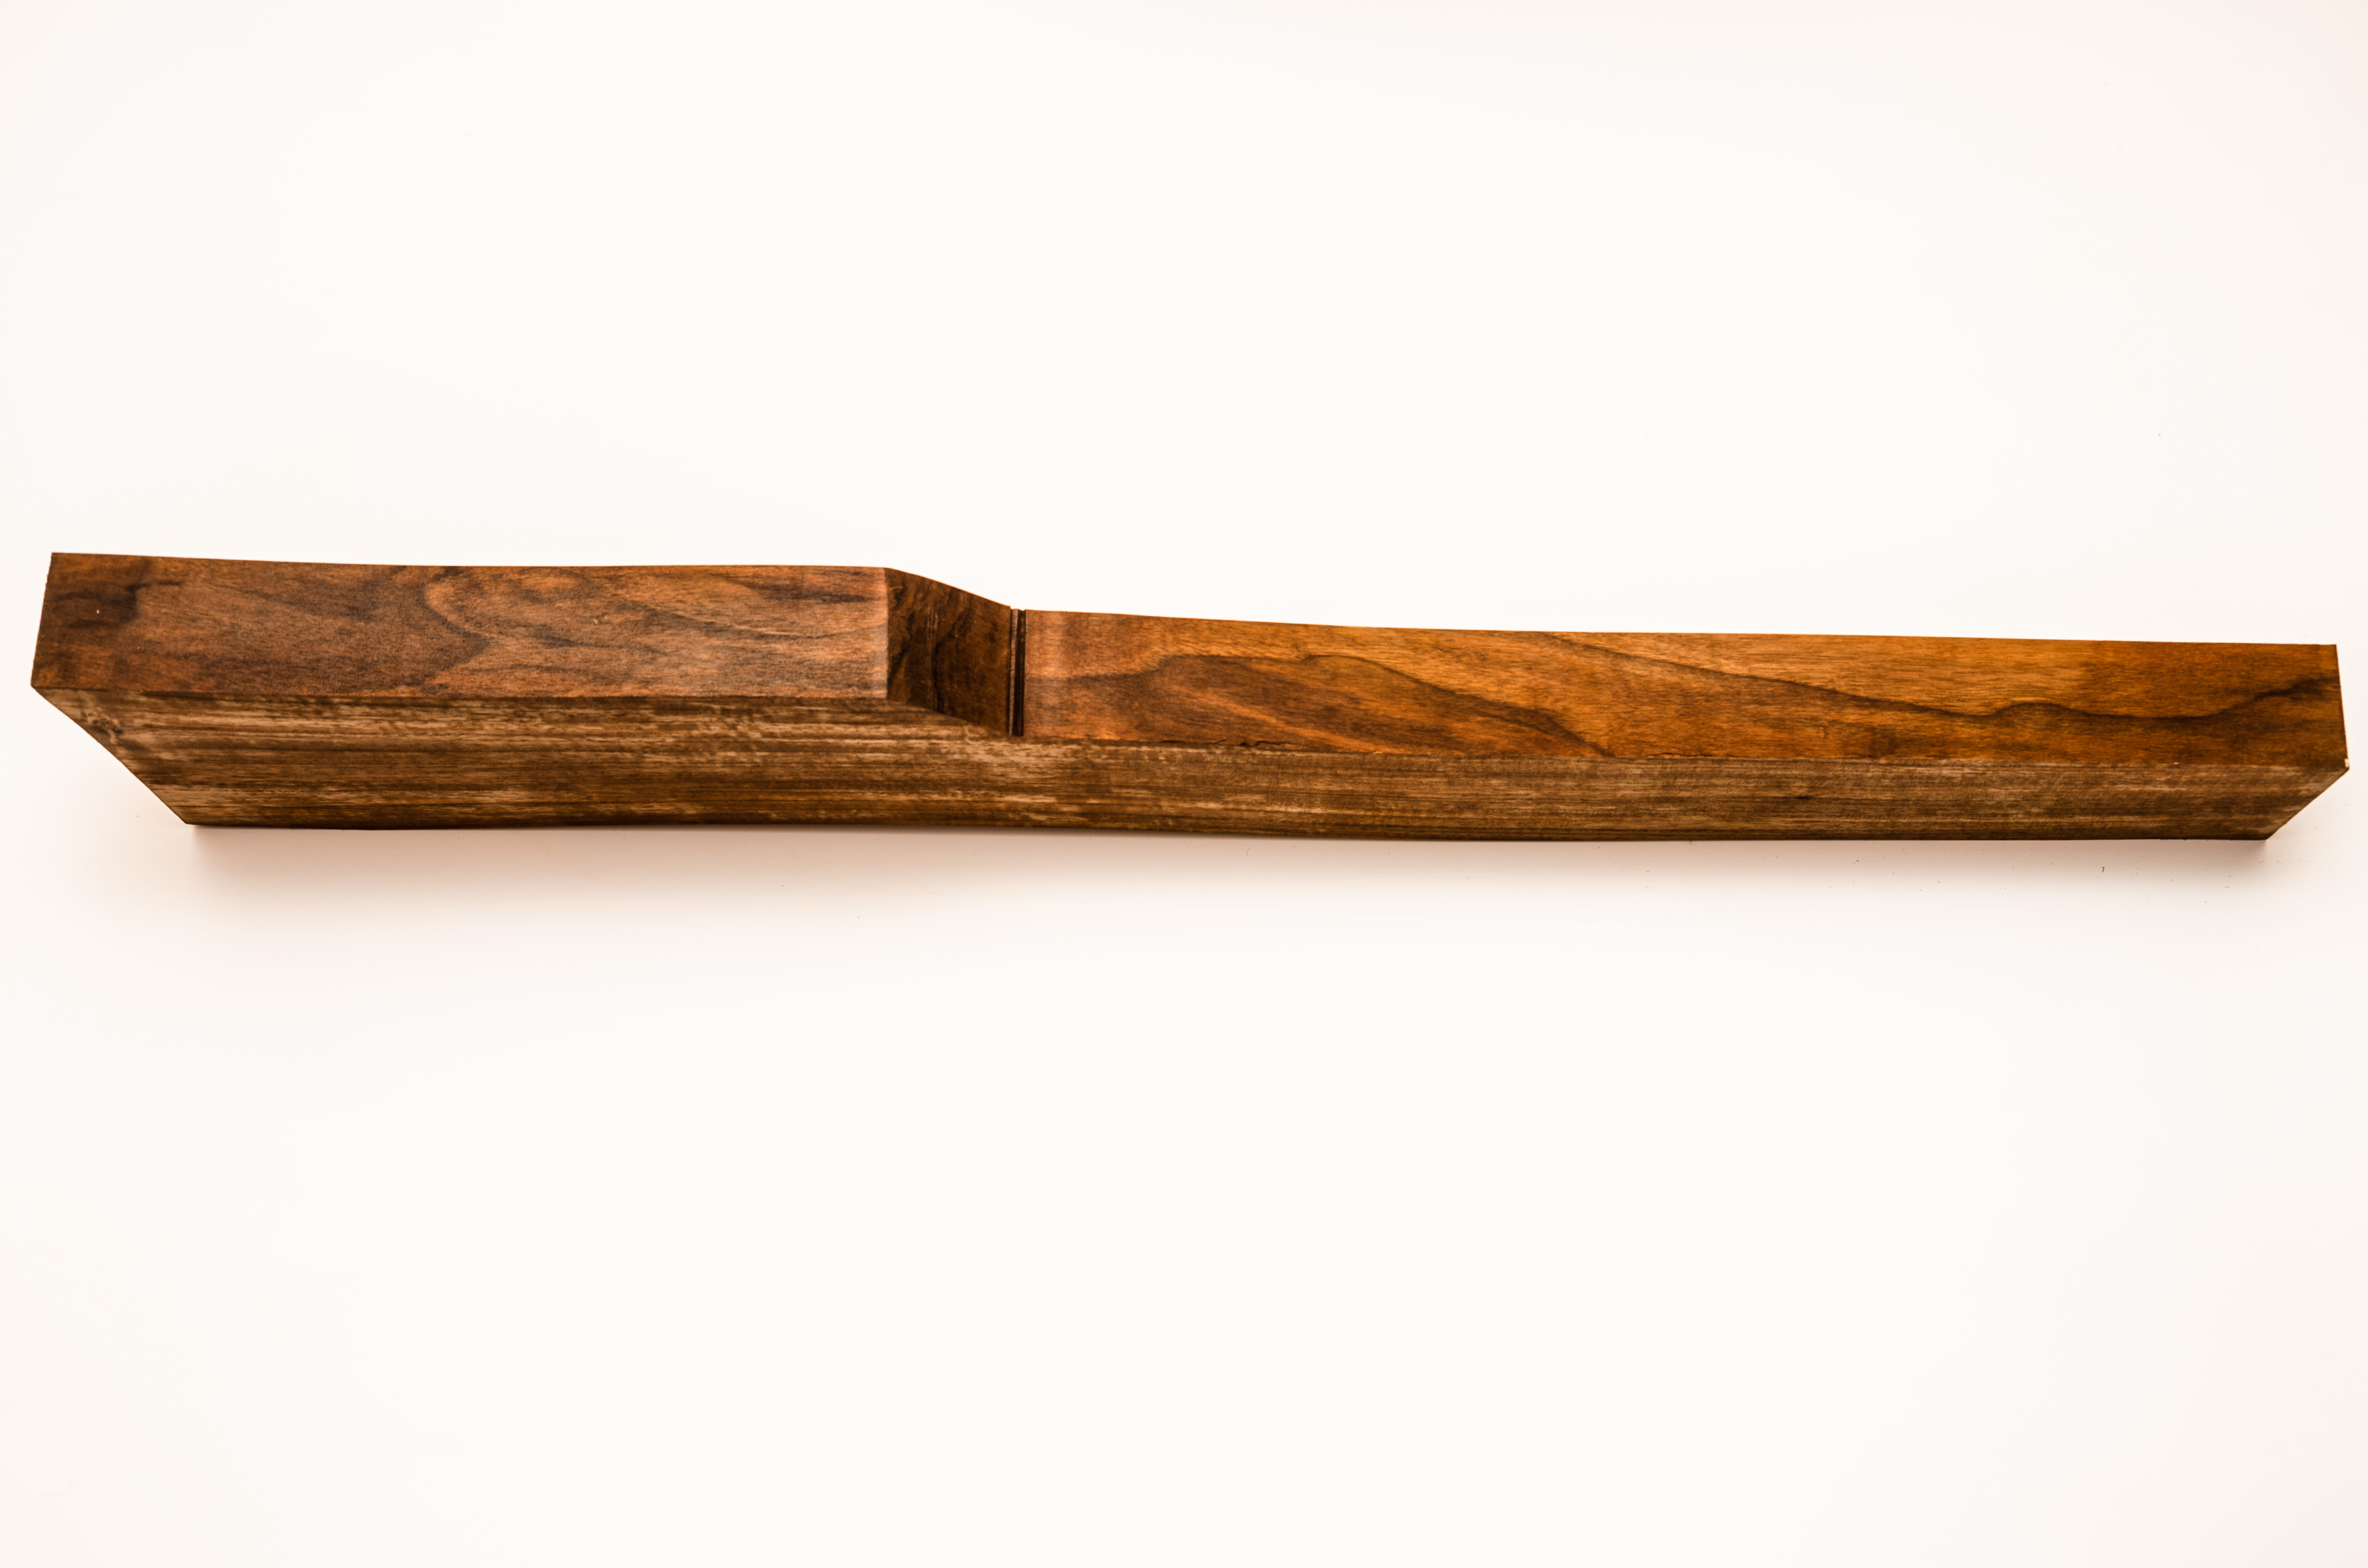 walnut_stock_blanks_for_guns_and_rifles-1169